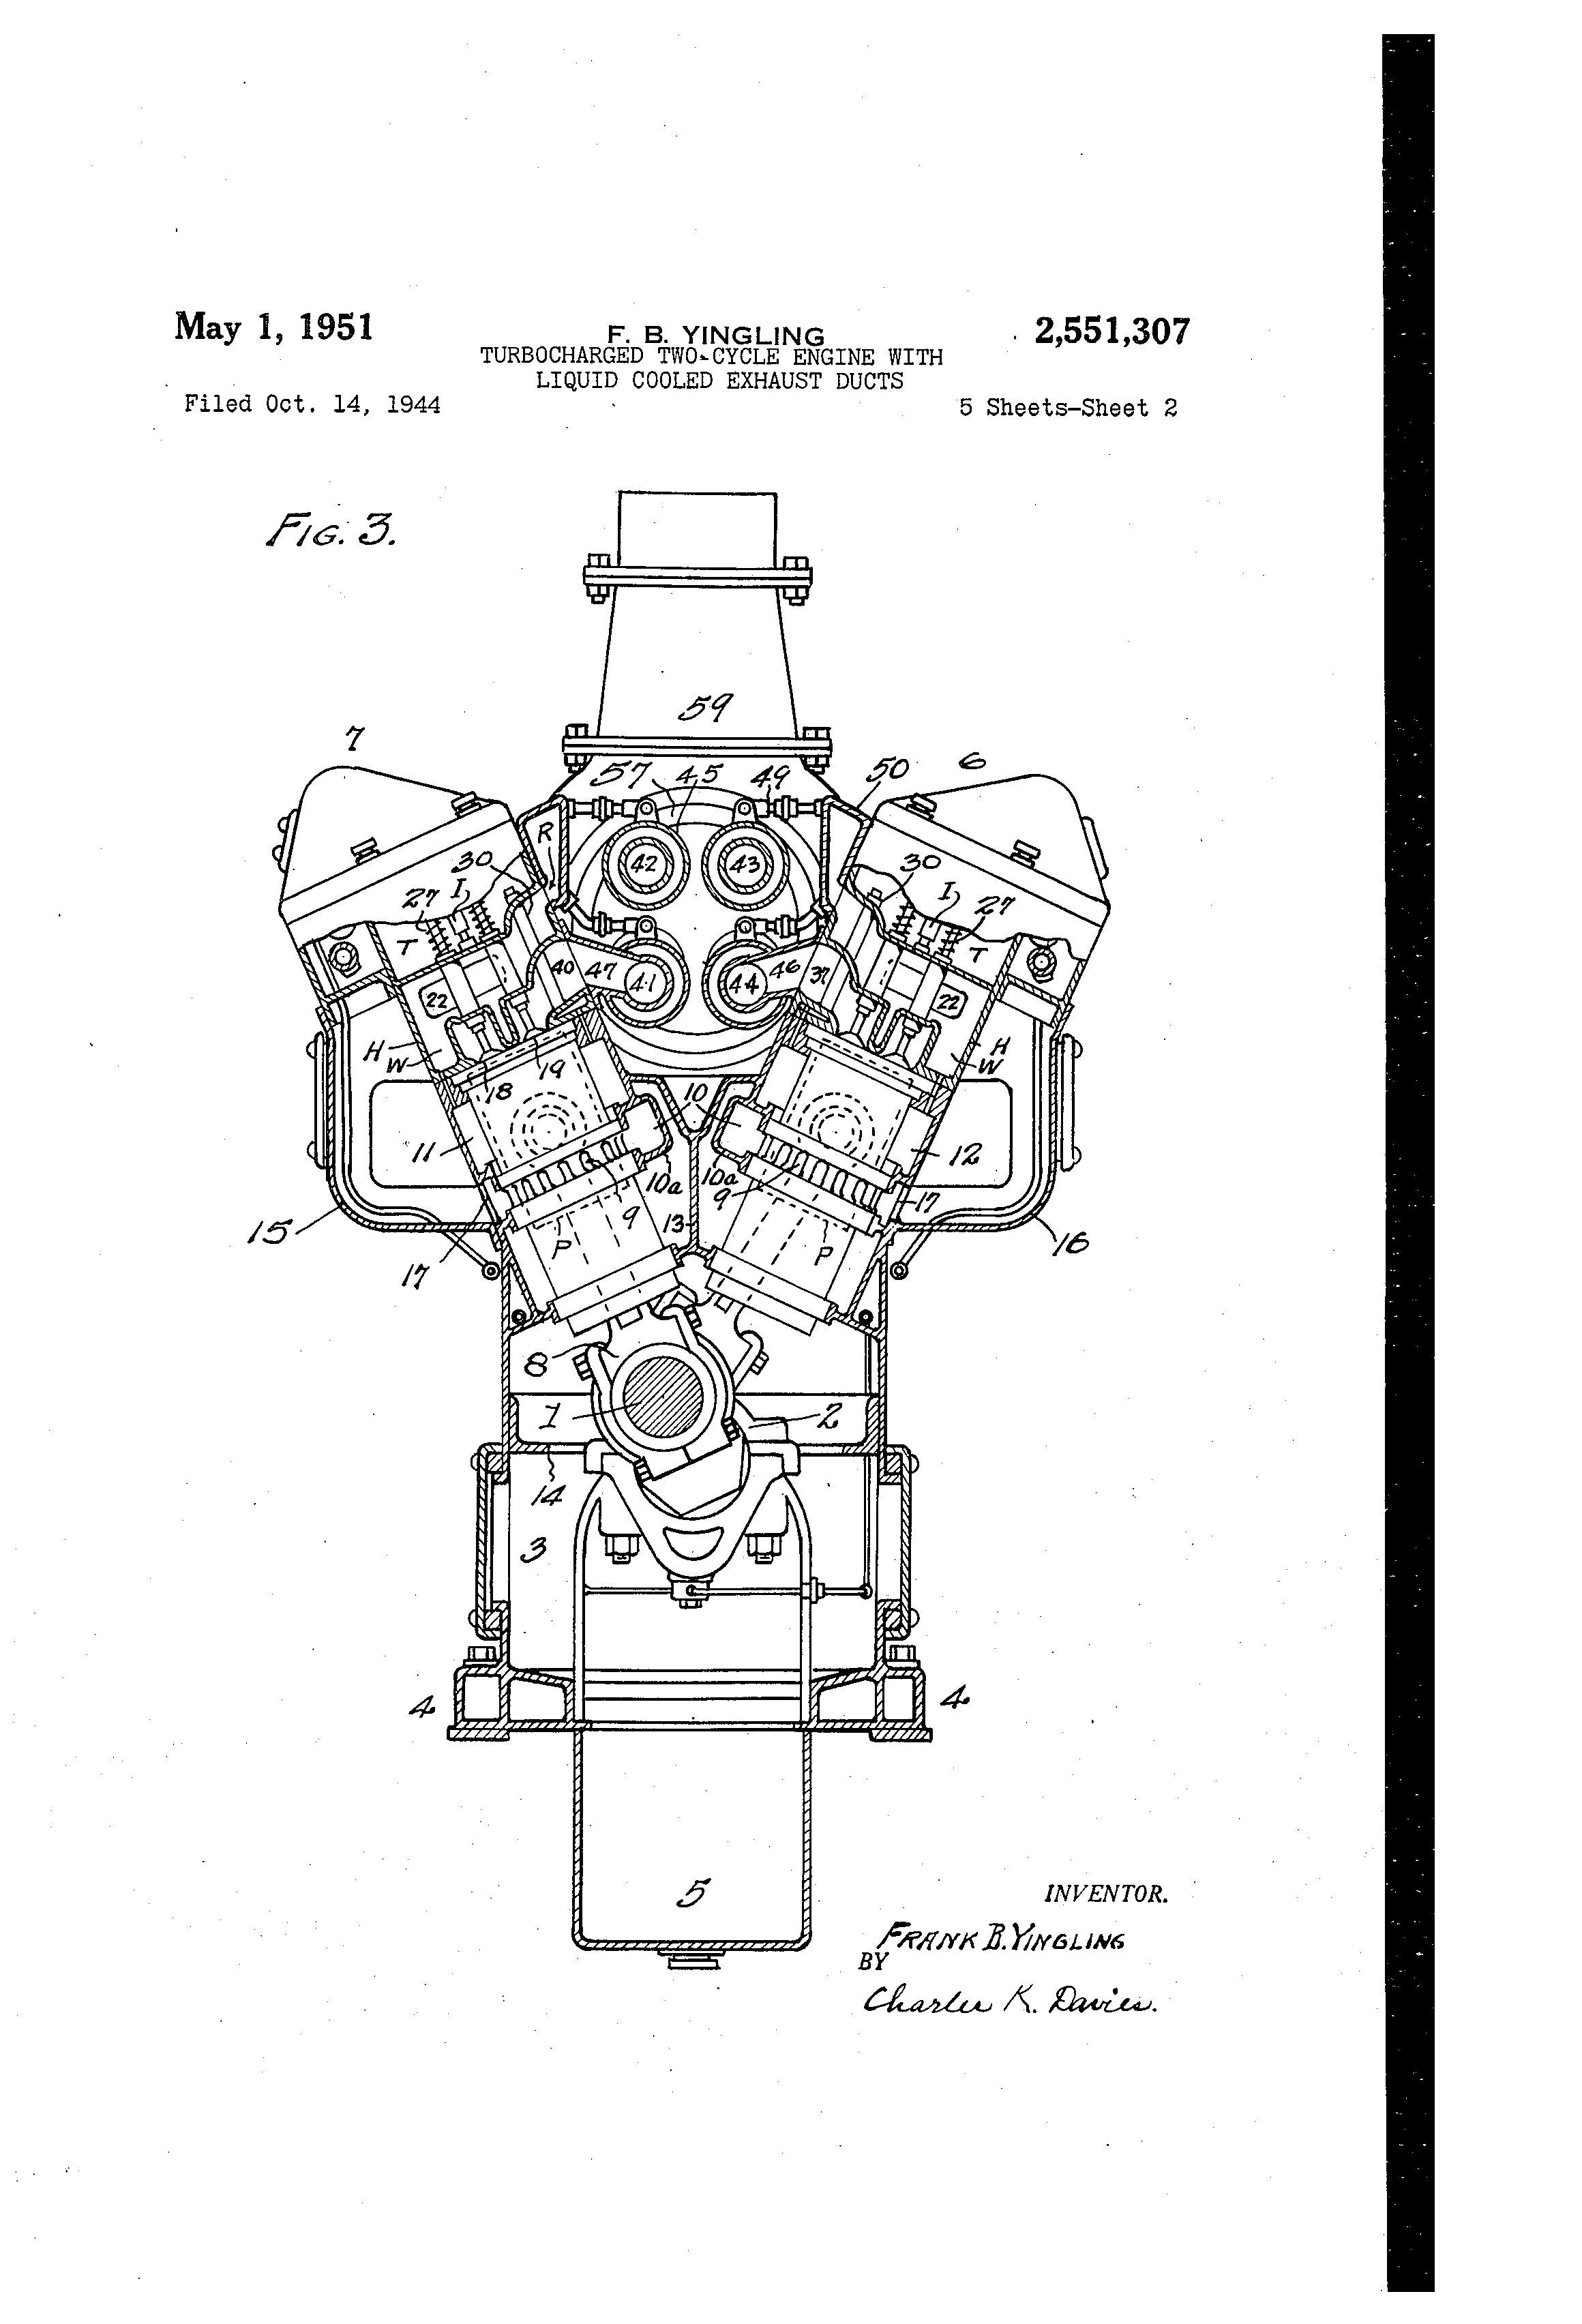 Brevet Us2551307 Turbocharged Two Cycle Engine With Liquid Cooled Stroke Diagram Patent Drawing